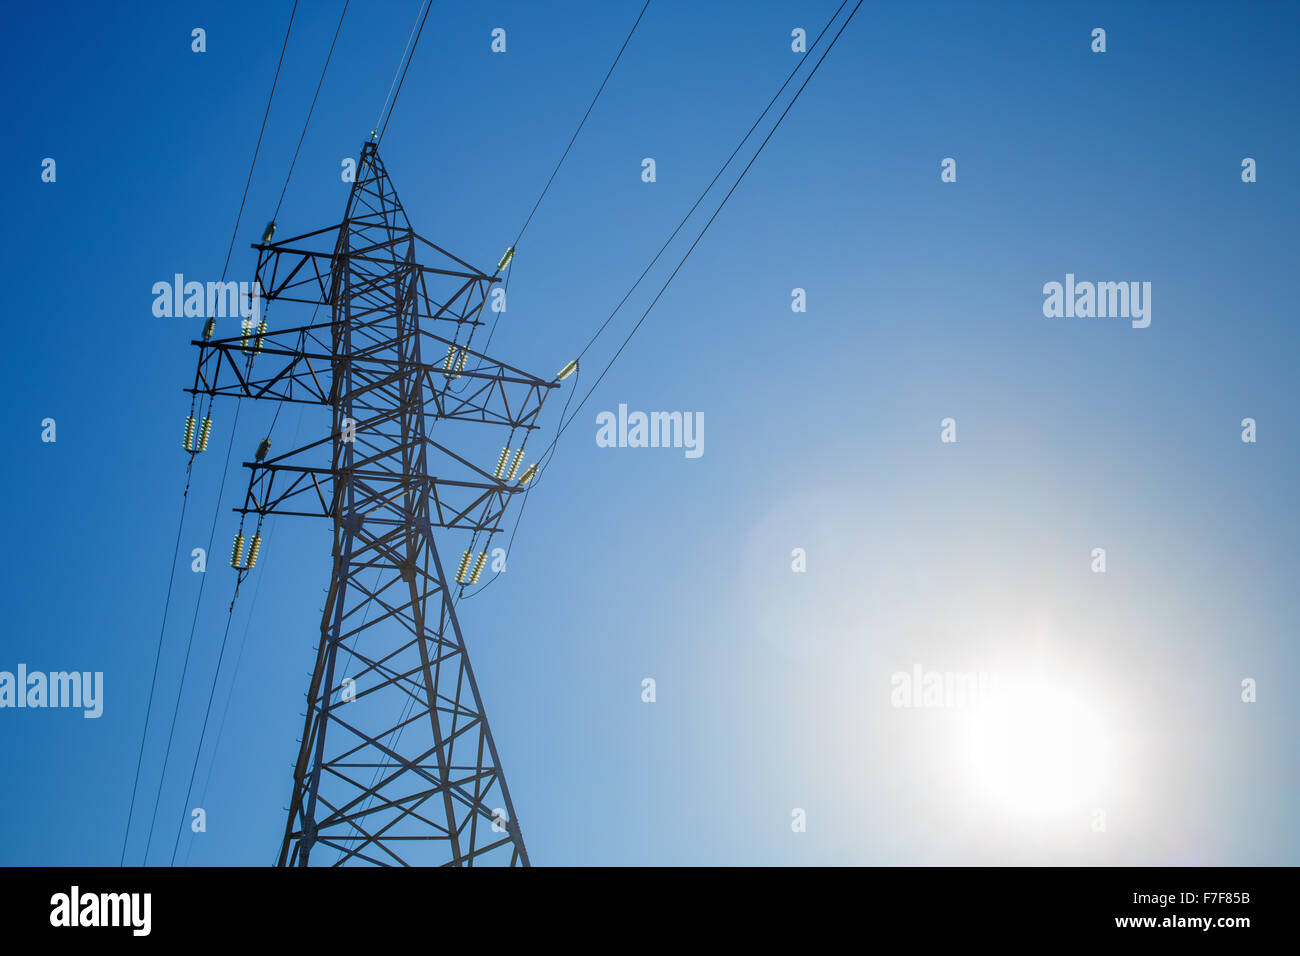 Electricity Background